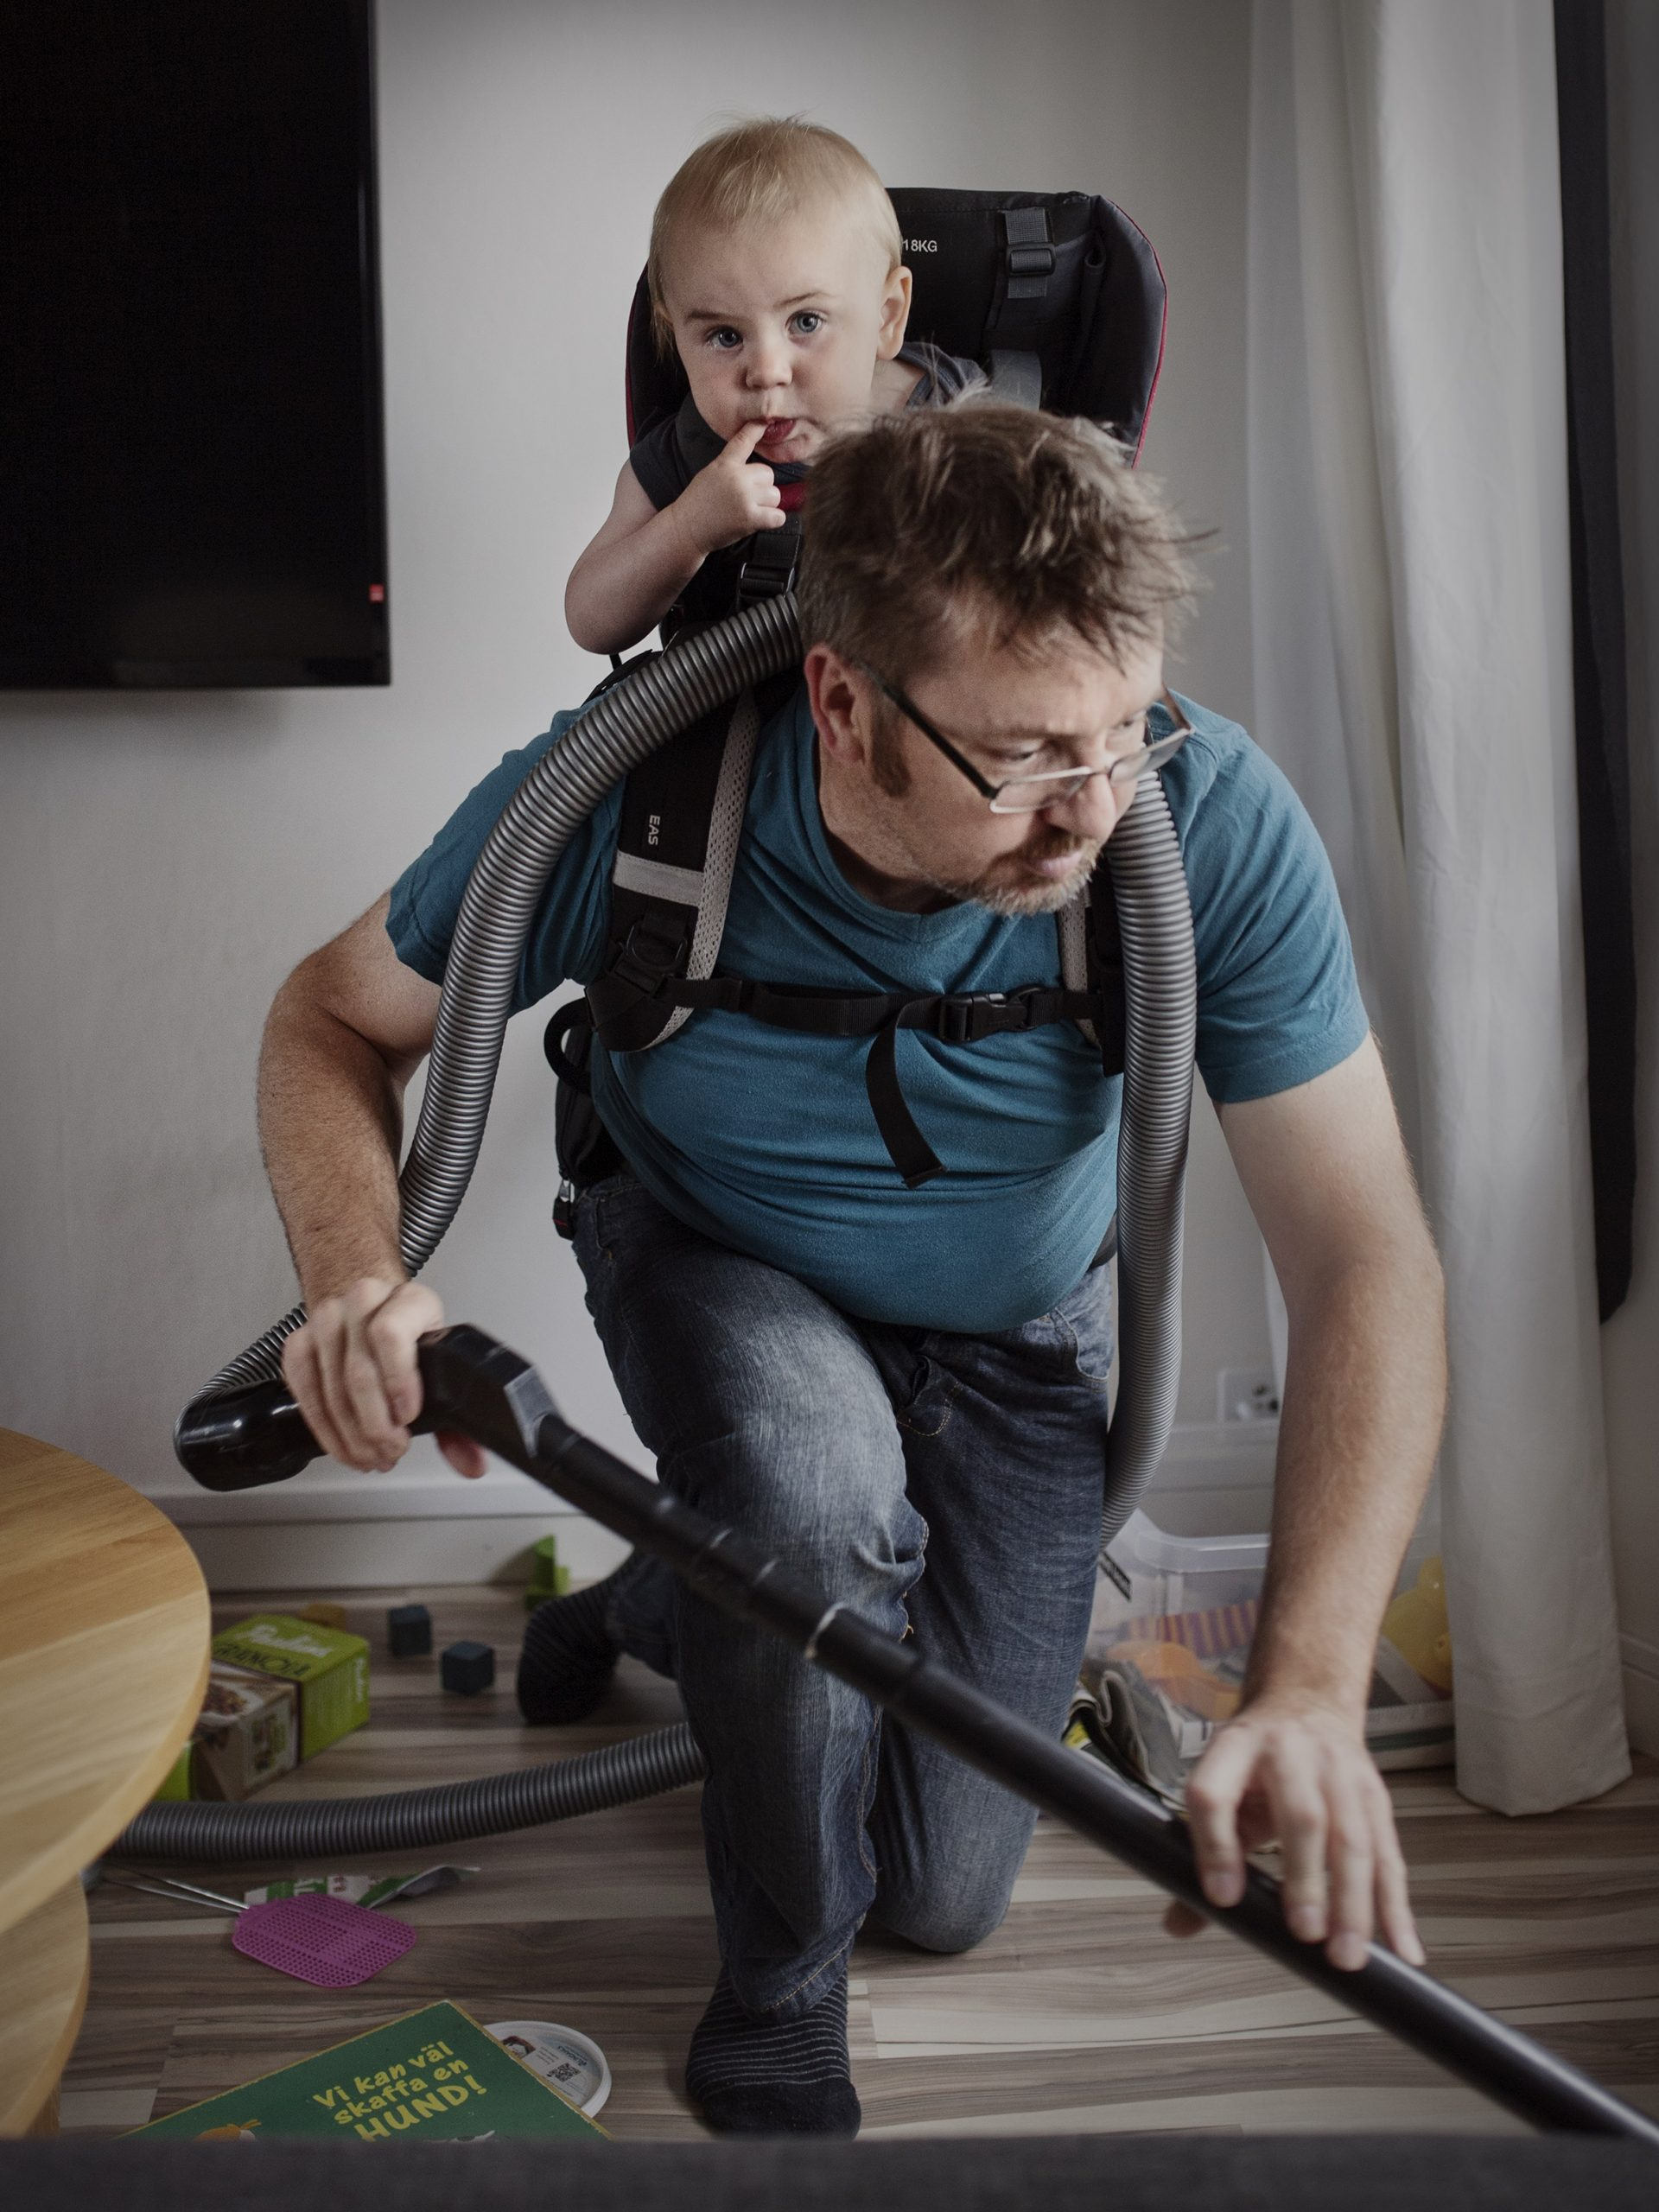 Ola Larsson, 41, Buyer On leave for eight months with his son Gustav.  ÒItÕs important that everybody is free to choose whether or not to take parental leave. There needs to be a big shift in the culture around it, and more male role models need to be given visibility. The government needs to become better at providing information about the advantages of parental leave for both parents. I had to wipe away a tear or two after I dropped my son off at daycare for the first time. It is a true gift to be able to create these kind of strong emotional ties to your child, thanks to SwedenÕs parental leave system. ItÕs almost as though you have to experience parental leave to understand what youÕd be losing, before you make the decision to work instead.Ó